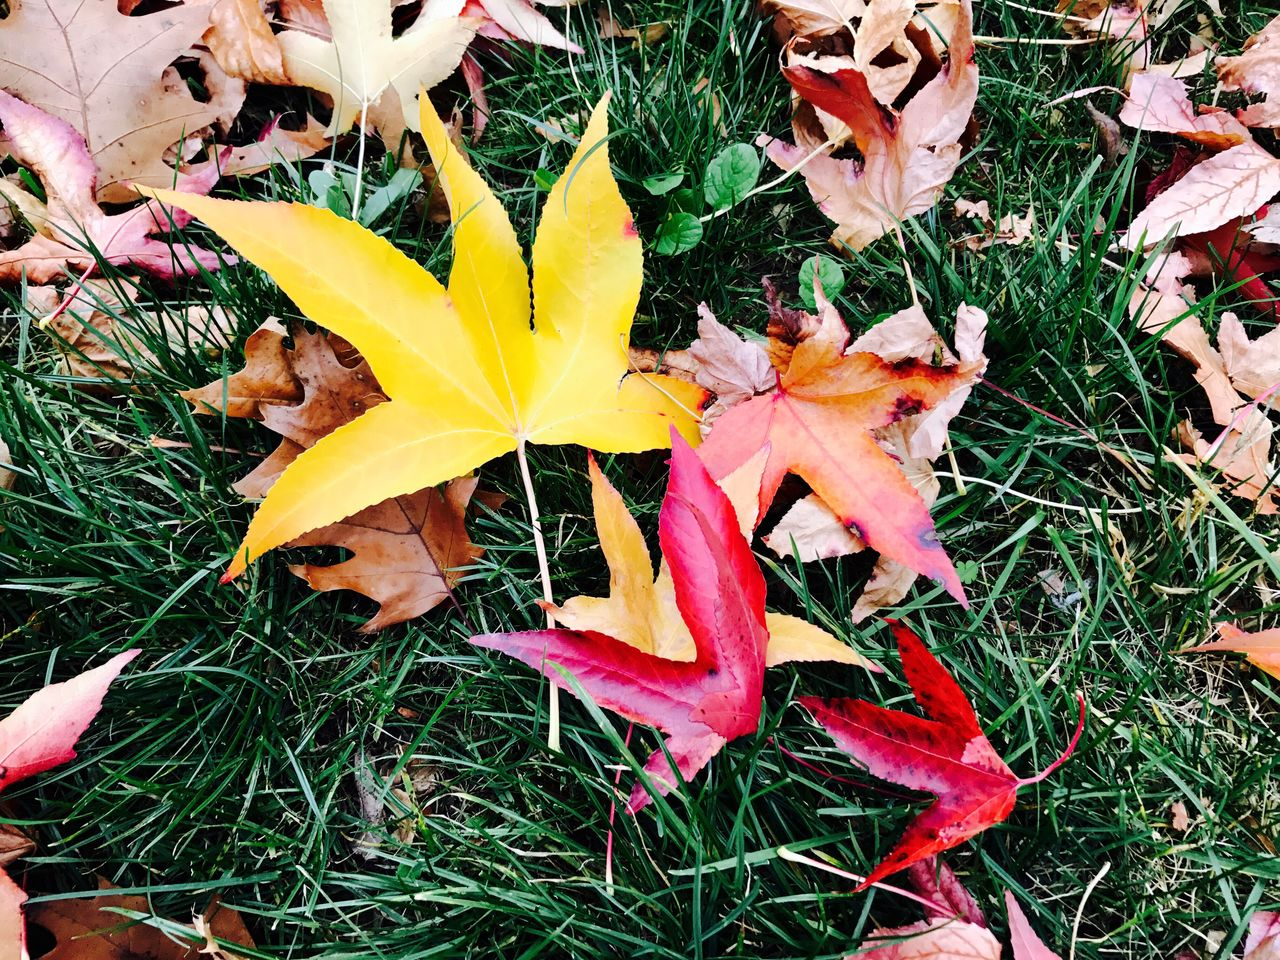 leaf, change, autumn, nature, dry, fragility, day, outdoors, high angle view, yellow, beauty in nature, grass, no people, close-up, growth, maple leaf, maple, freshness, flower head